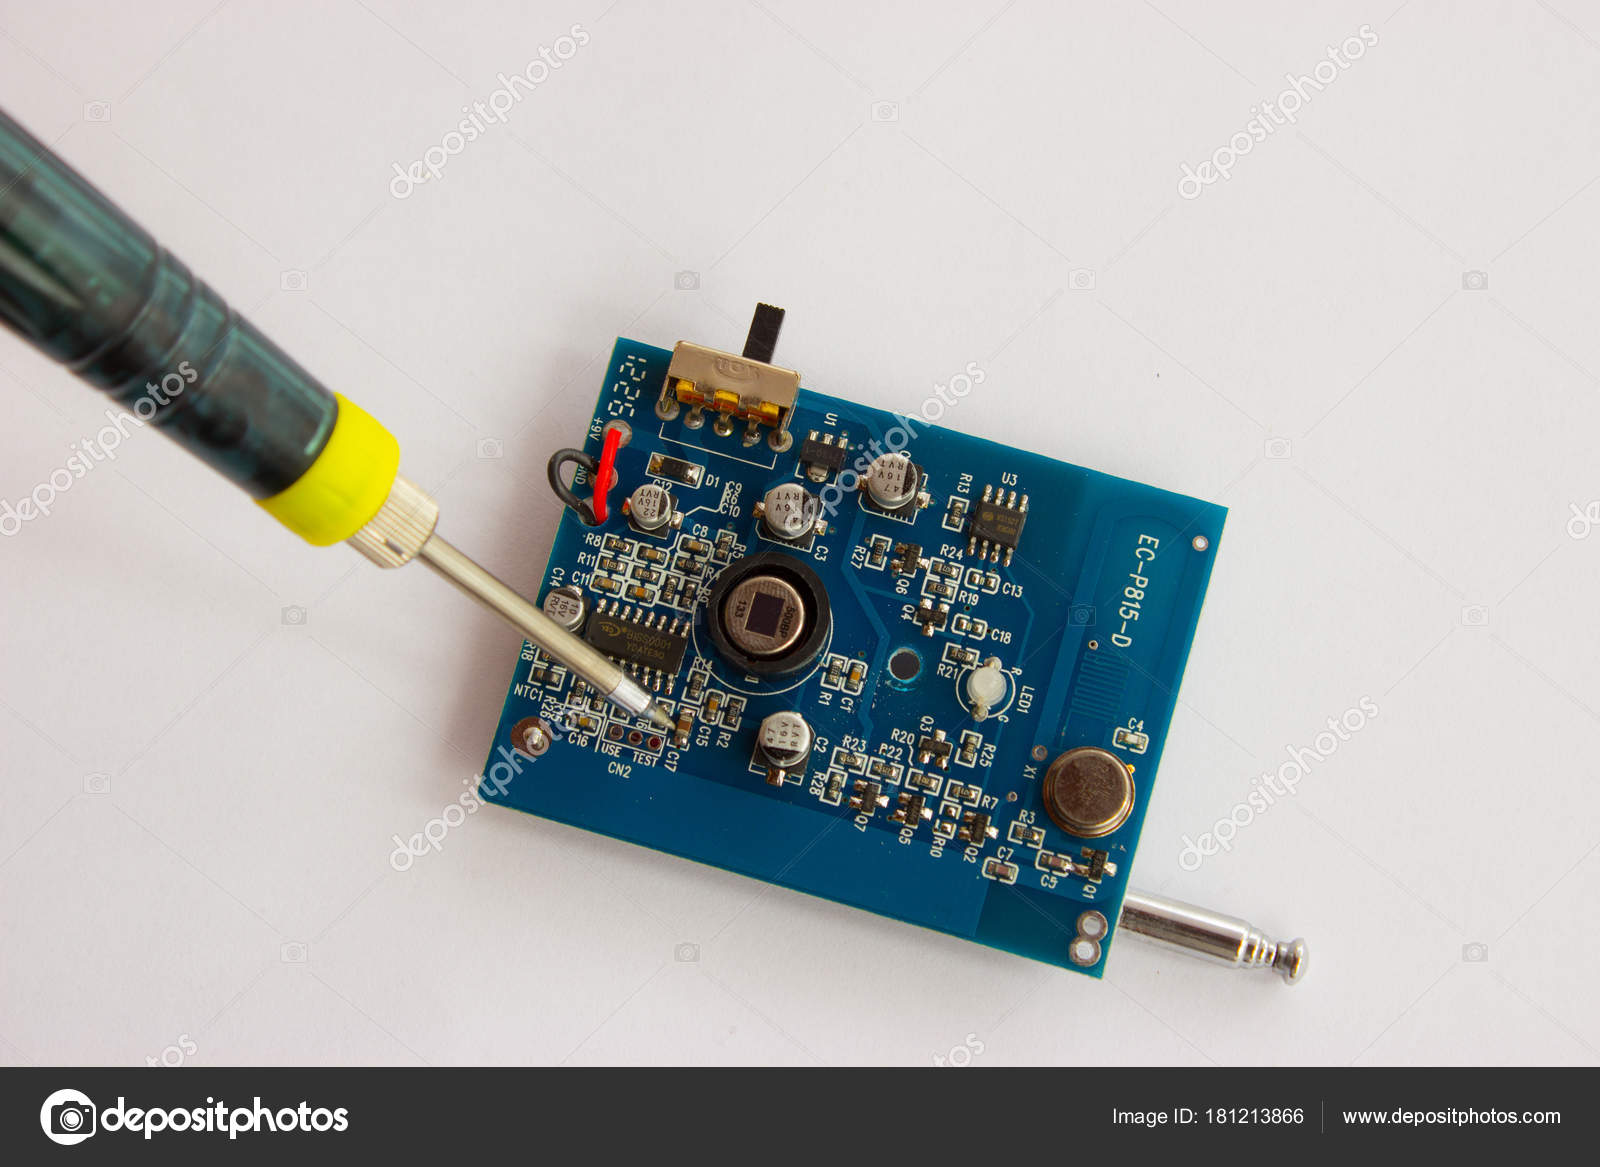 Soldering Of Electronic Components On The Pcb Stock Photo Jk21 Printed Circuit Board With Many Electrical